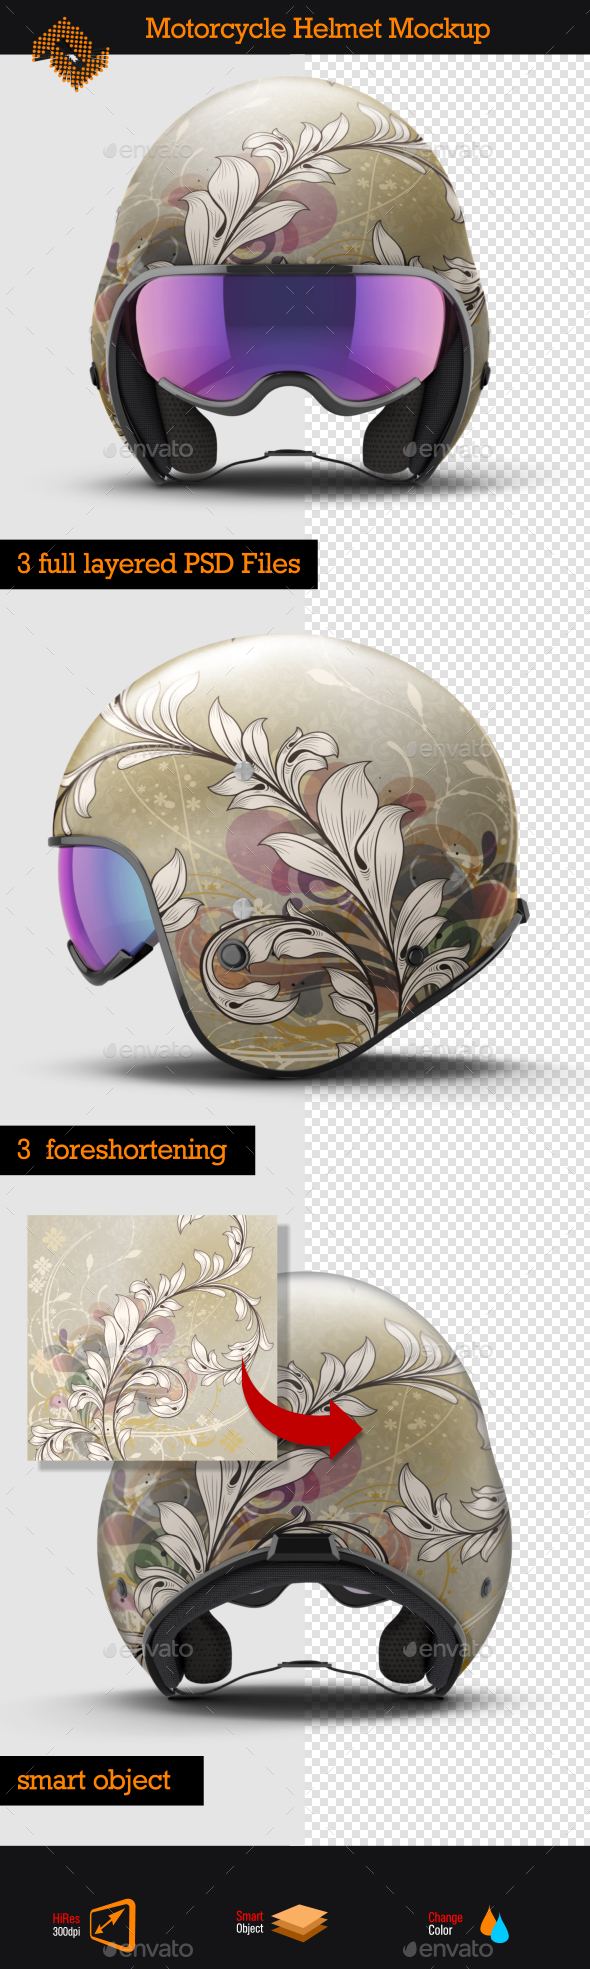 Open Face Motorcycle Helmet Mockup - Product Mock-Ups Graphics